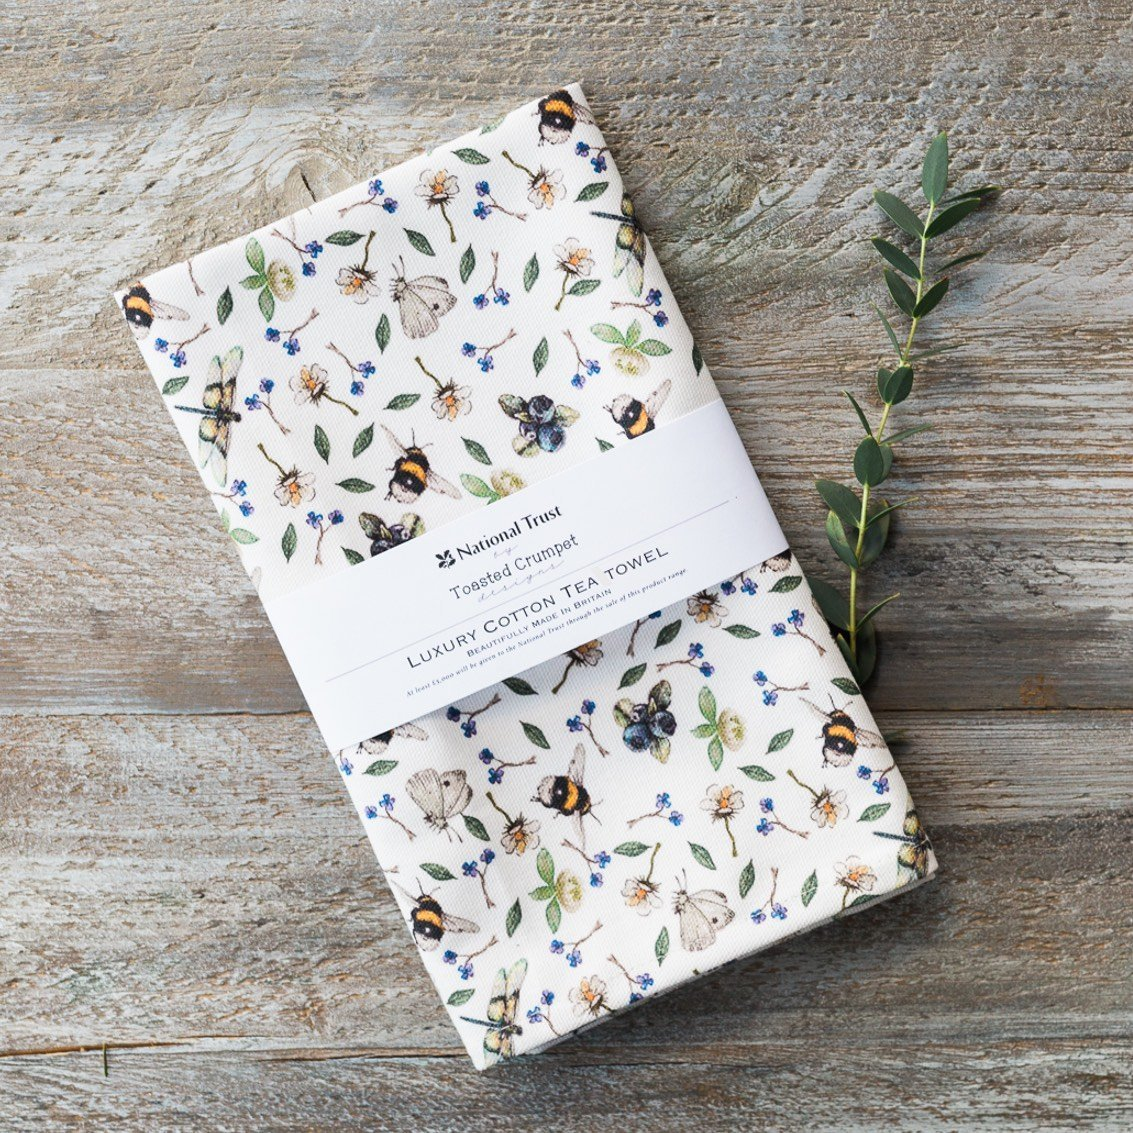 Wild Flower Meadows Tea Towel